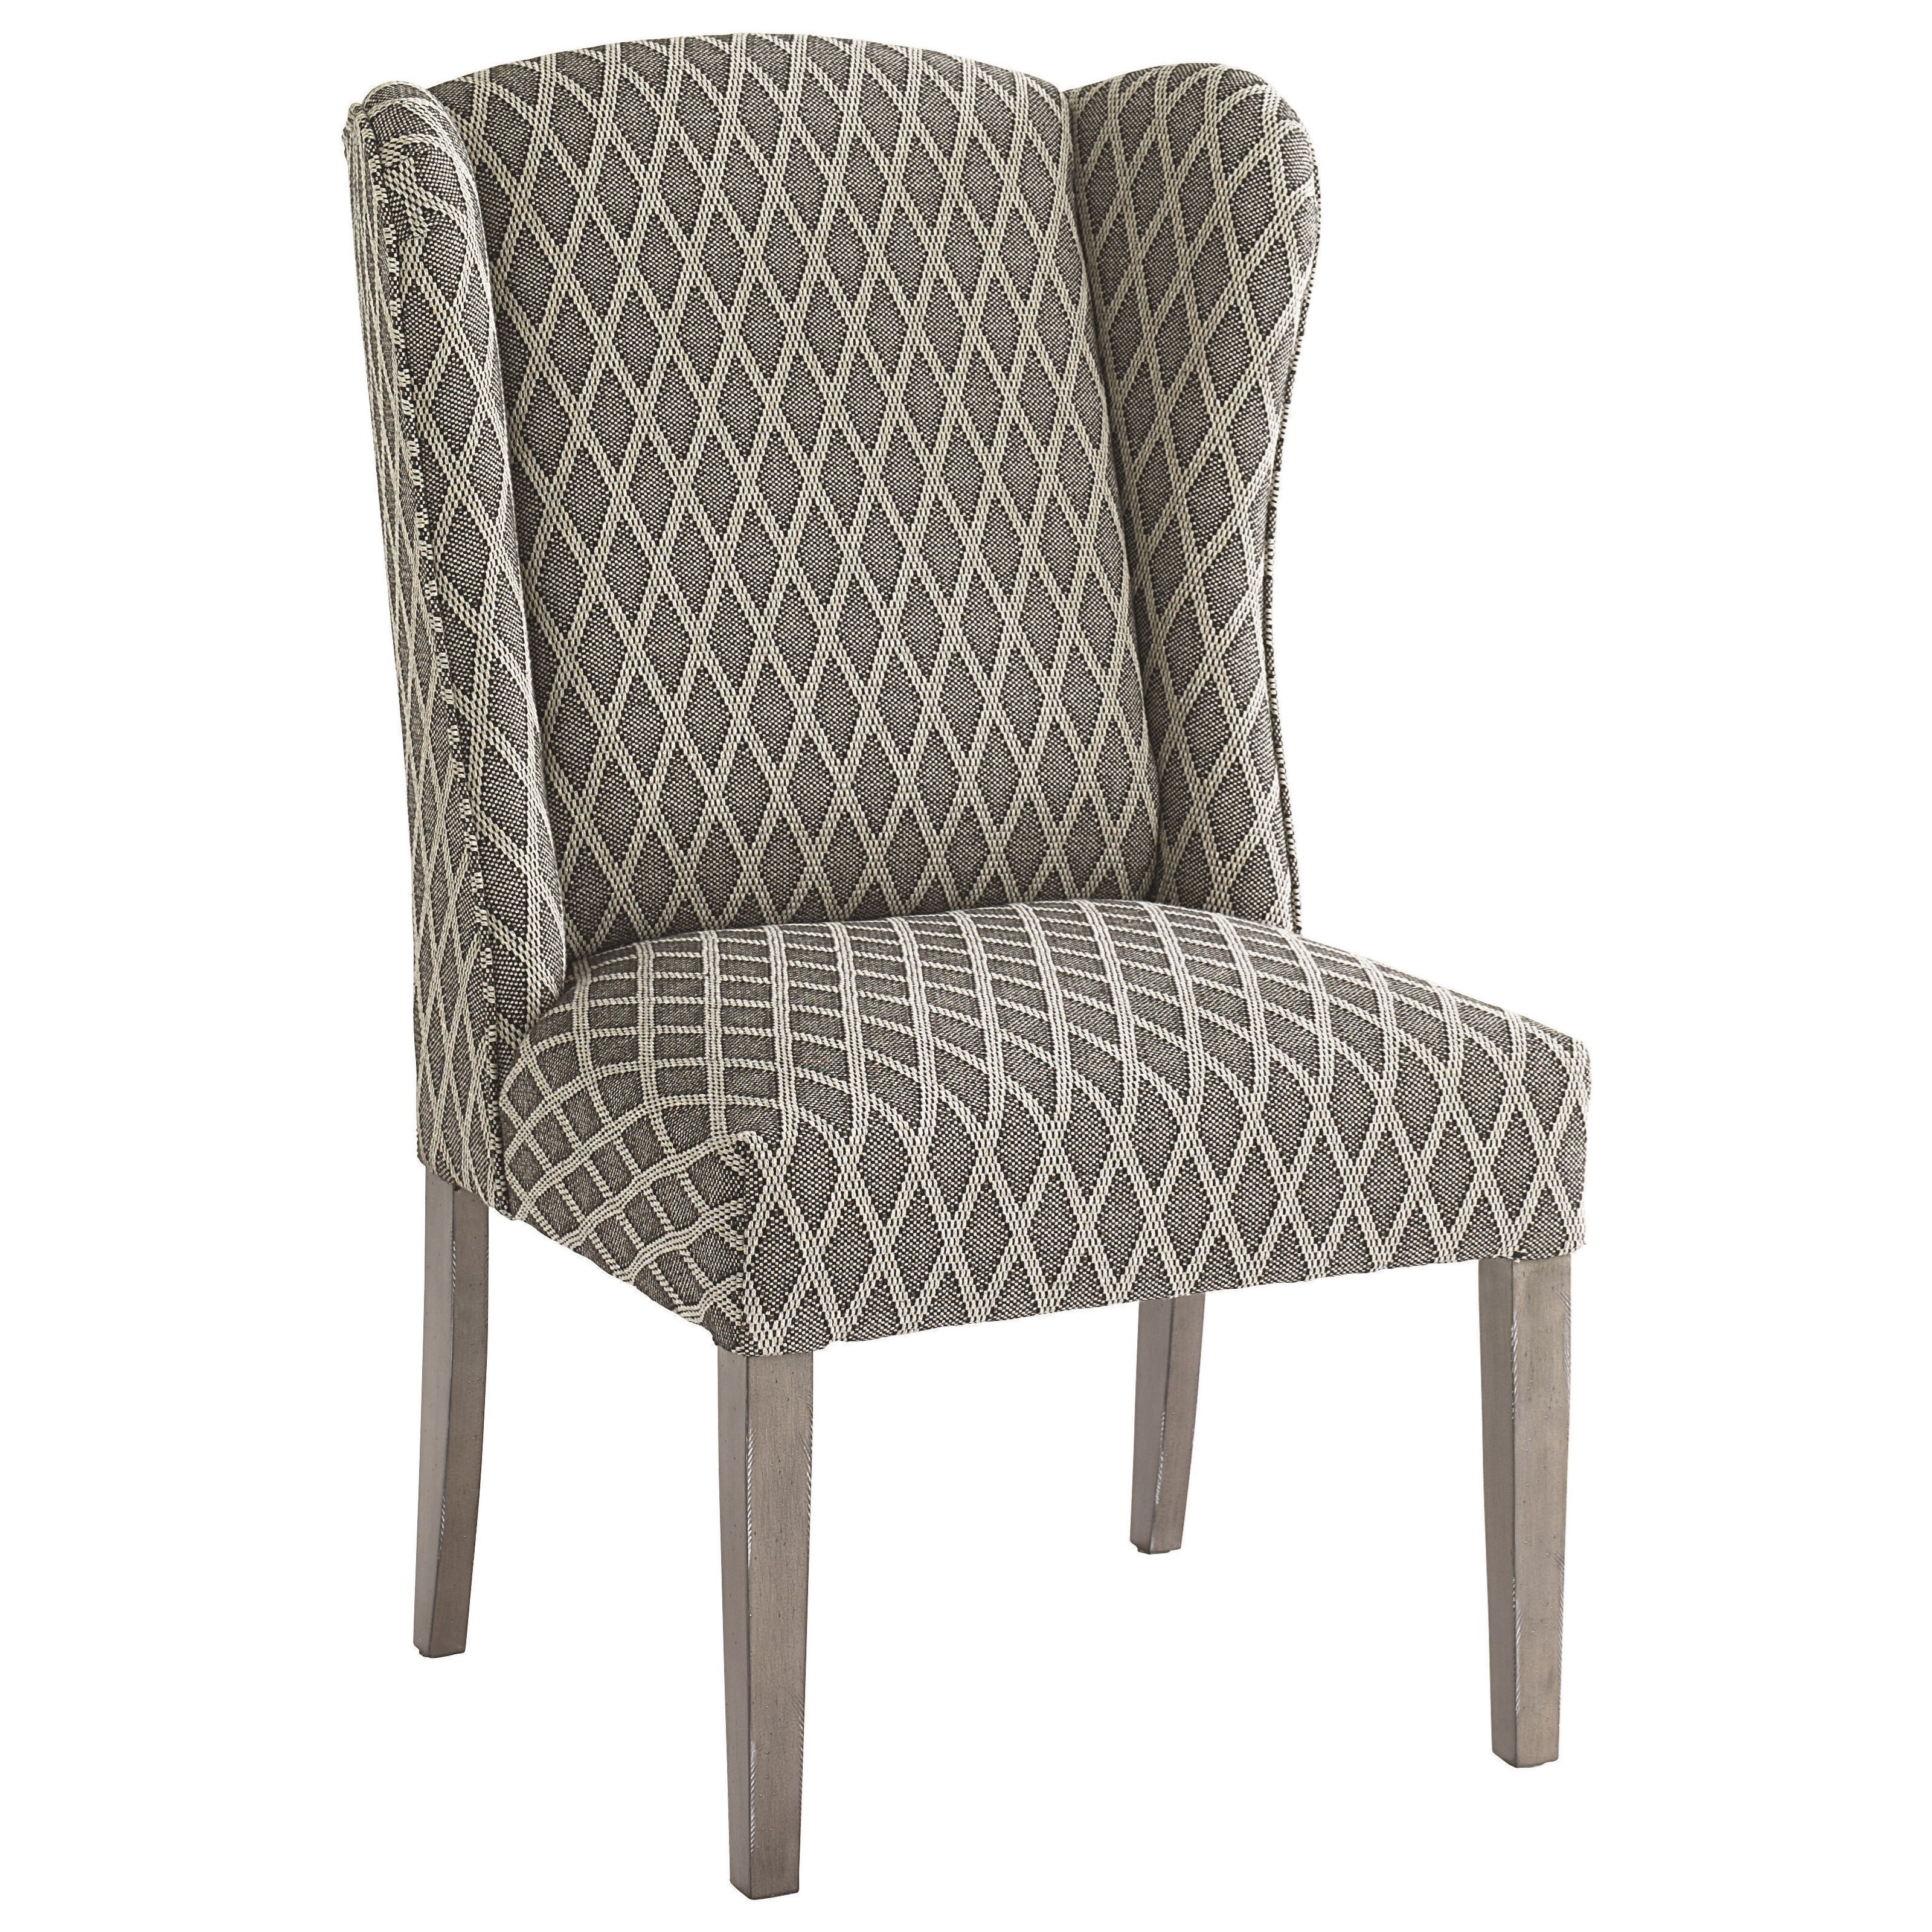 Bassett Alden Customizable Side Chair - Item Number: 1128-02-Gray Diamond